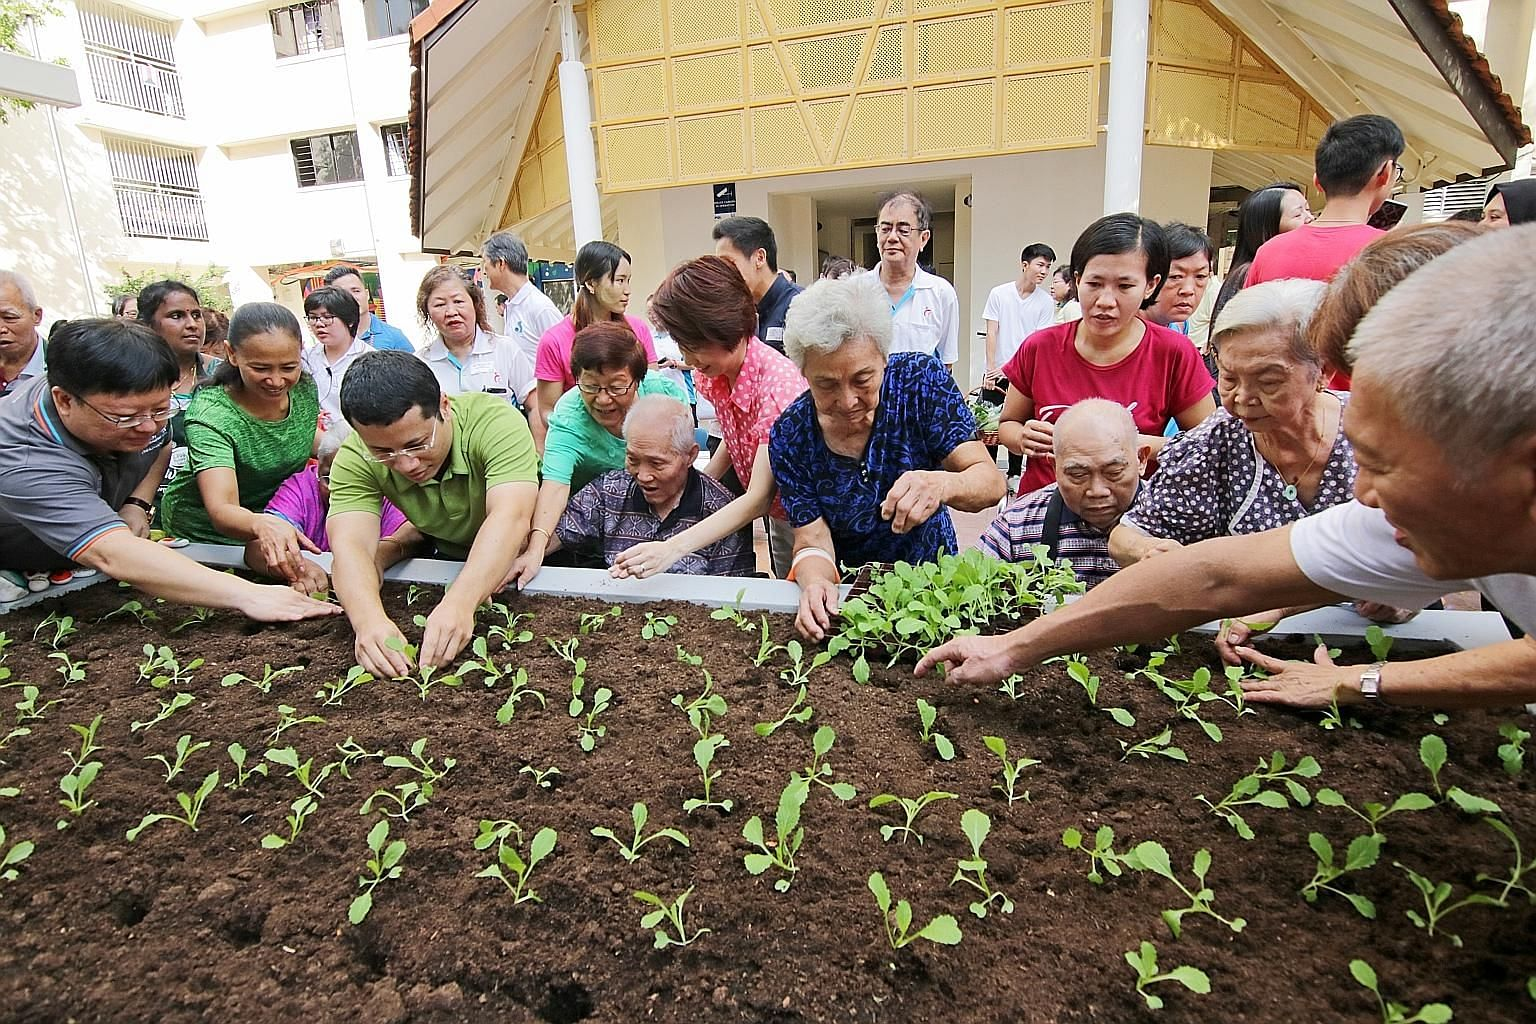 Retiree May Lee leads a team of over 20 gardeners and tends to three flourishing community gardens next to Block 106 Bukit Batok Central. Housewife Low Siew Min is a new volunteer who will look after the newly set-up linear garden. Left: Social and F